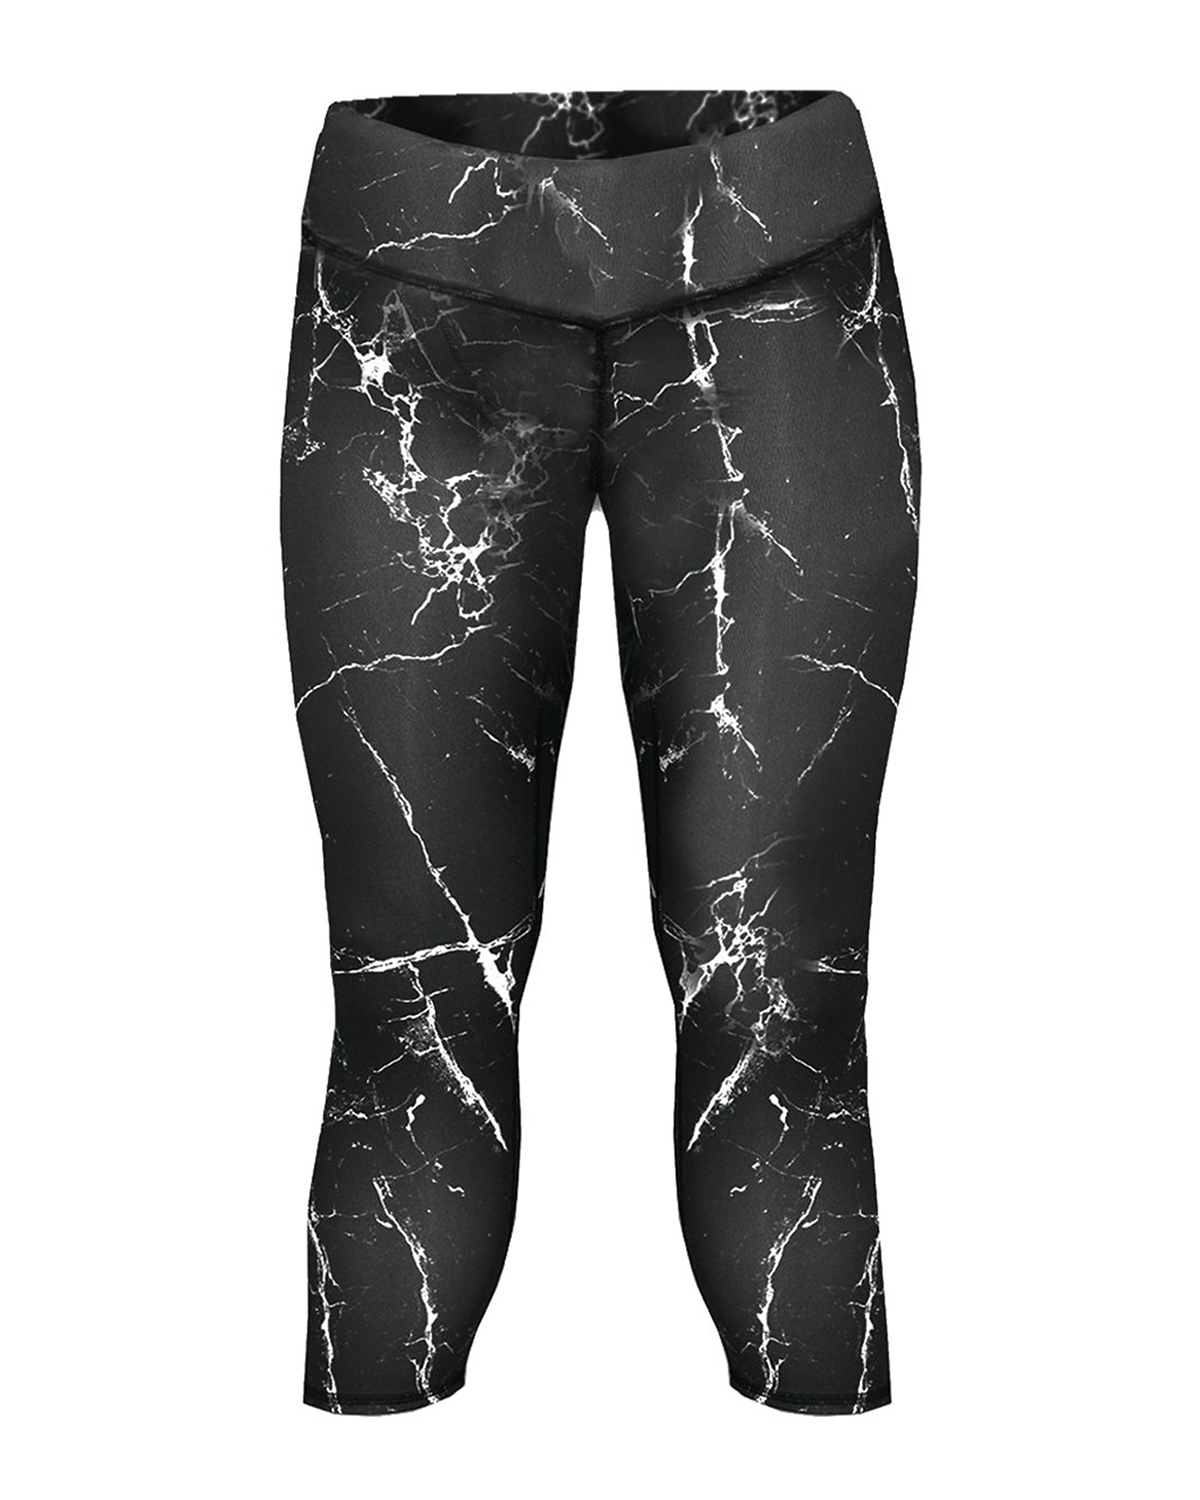 Badger Sport Sport 4622 - Ladies' Shock Tights